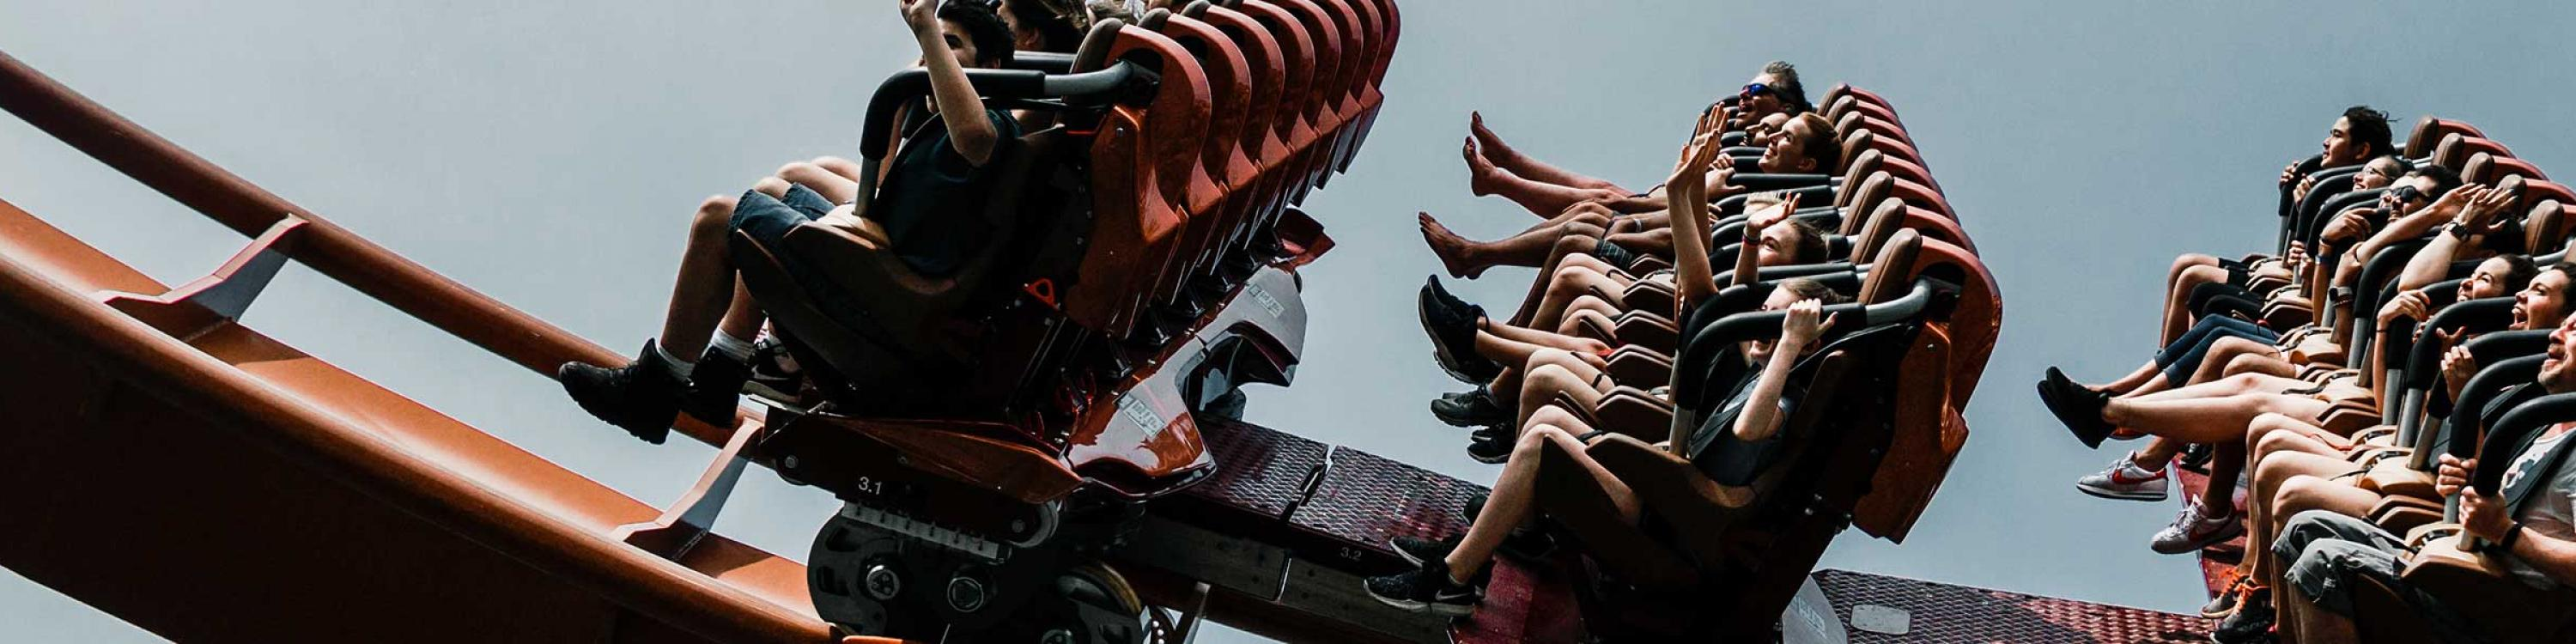 Group of people on roller coaster